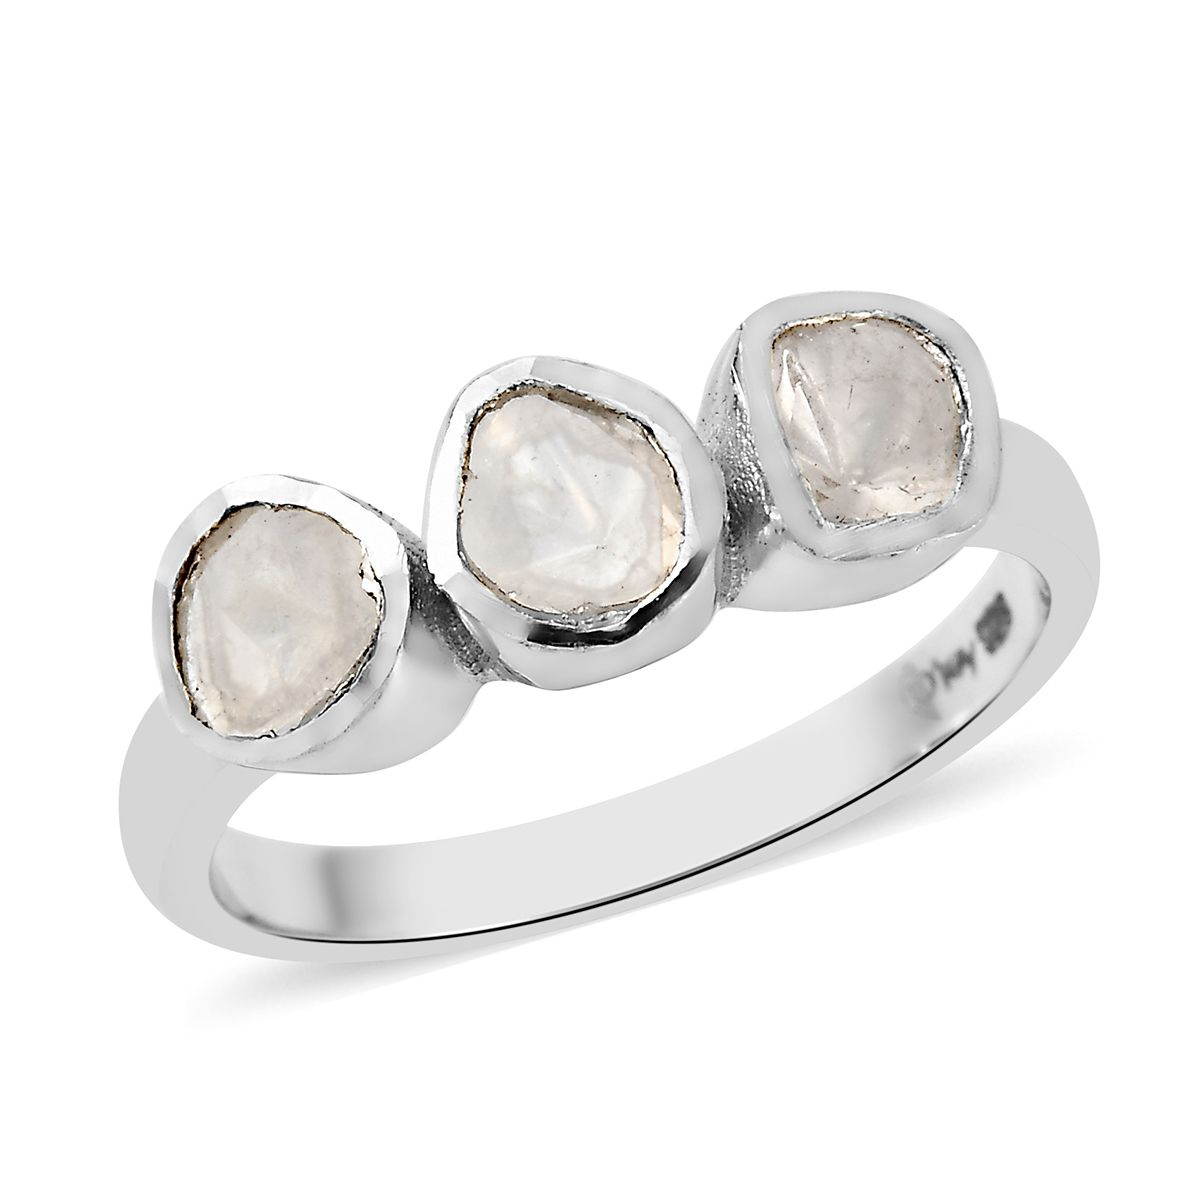 Ring Size Can Be Customize 925 Sterling Silver Polki Diamond Desiner Ring Jewelry